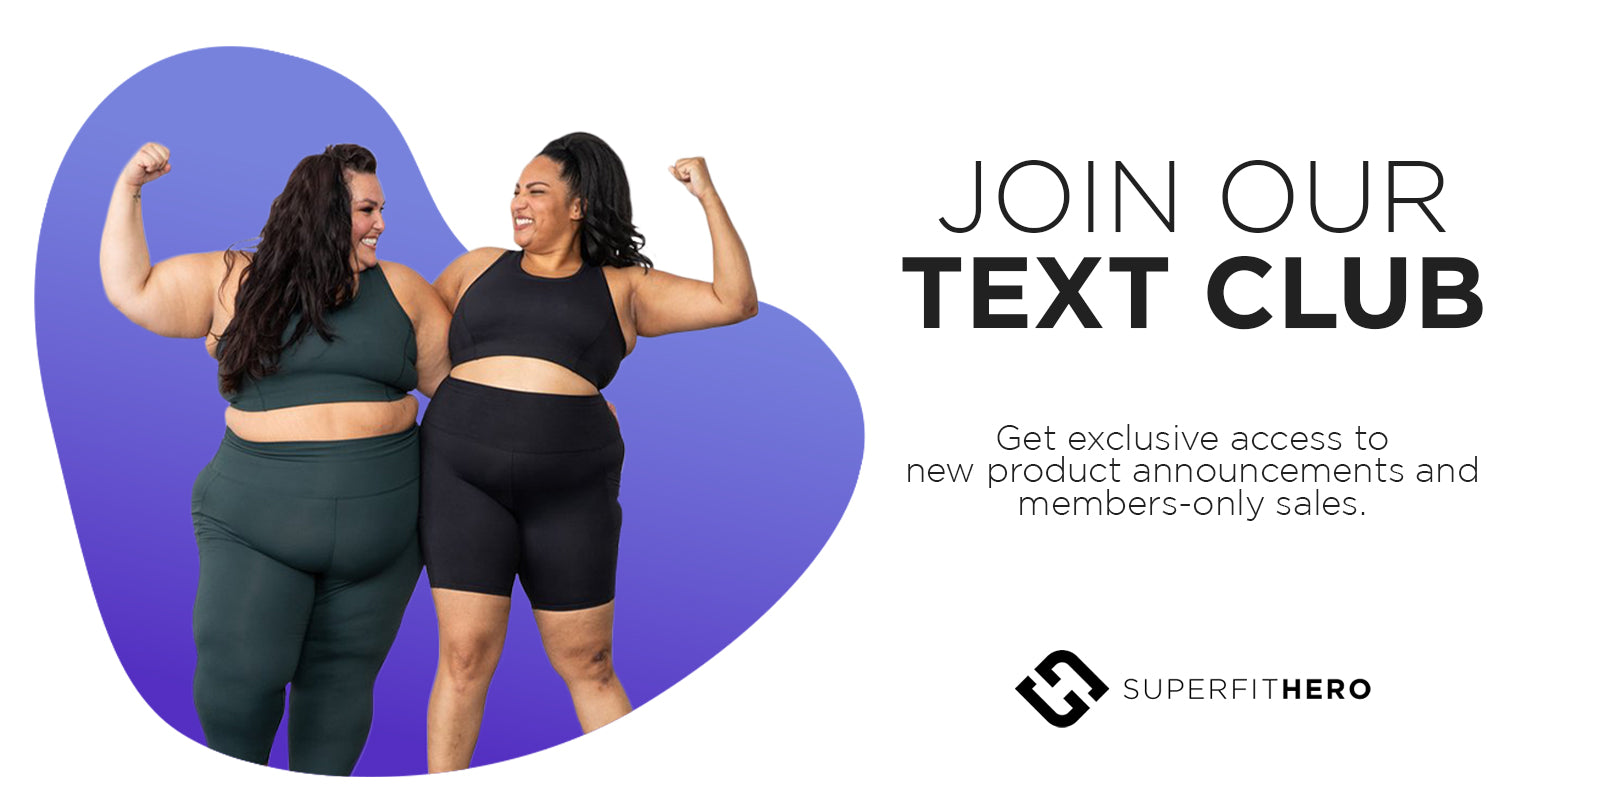 Join our Text Club for access to exclusive new product announcements and members-only sales. Superfit Hero